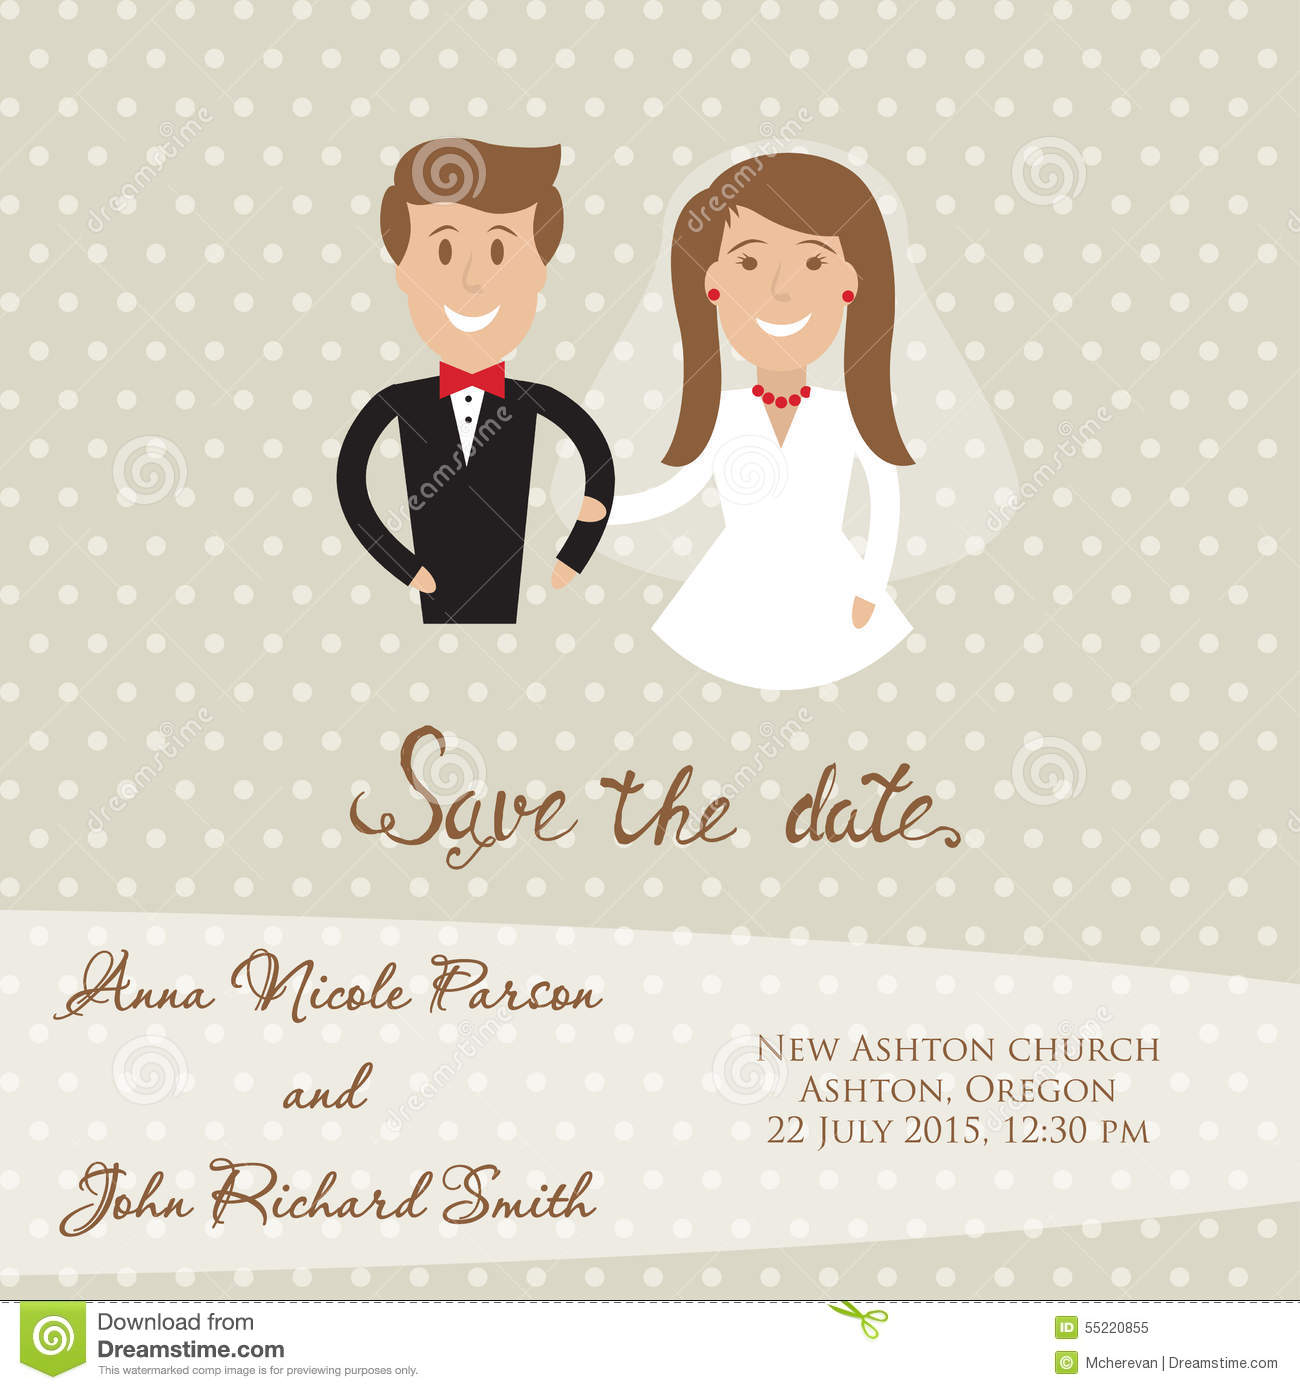 Wedding Card With Newly Wed Couple Save The Date Card With Bride